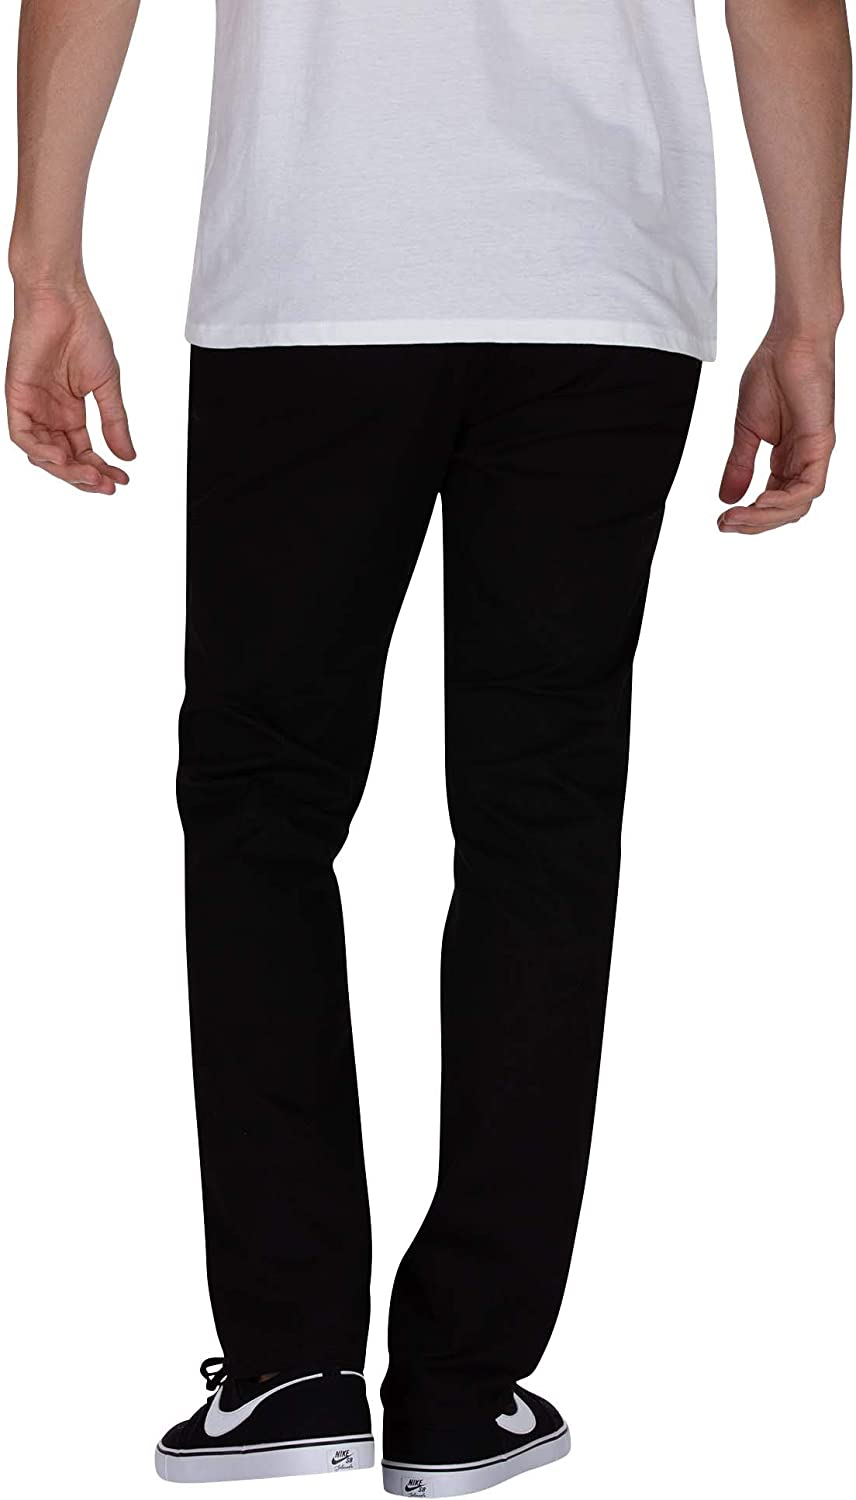 Hurley M Oo Stretch Chino Pant Hombre Hombre